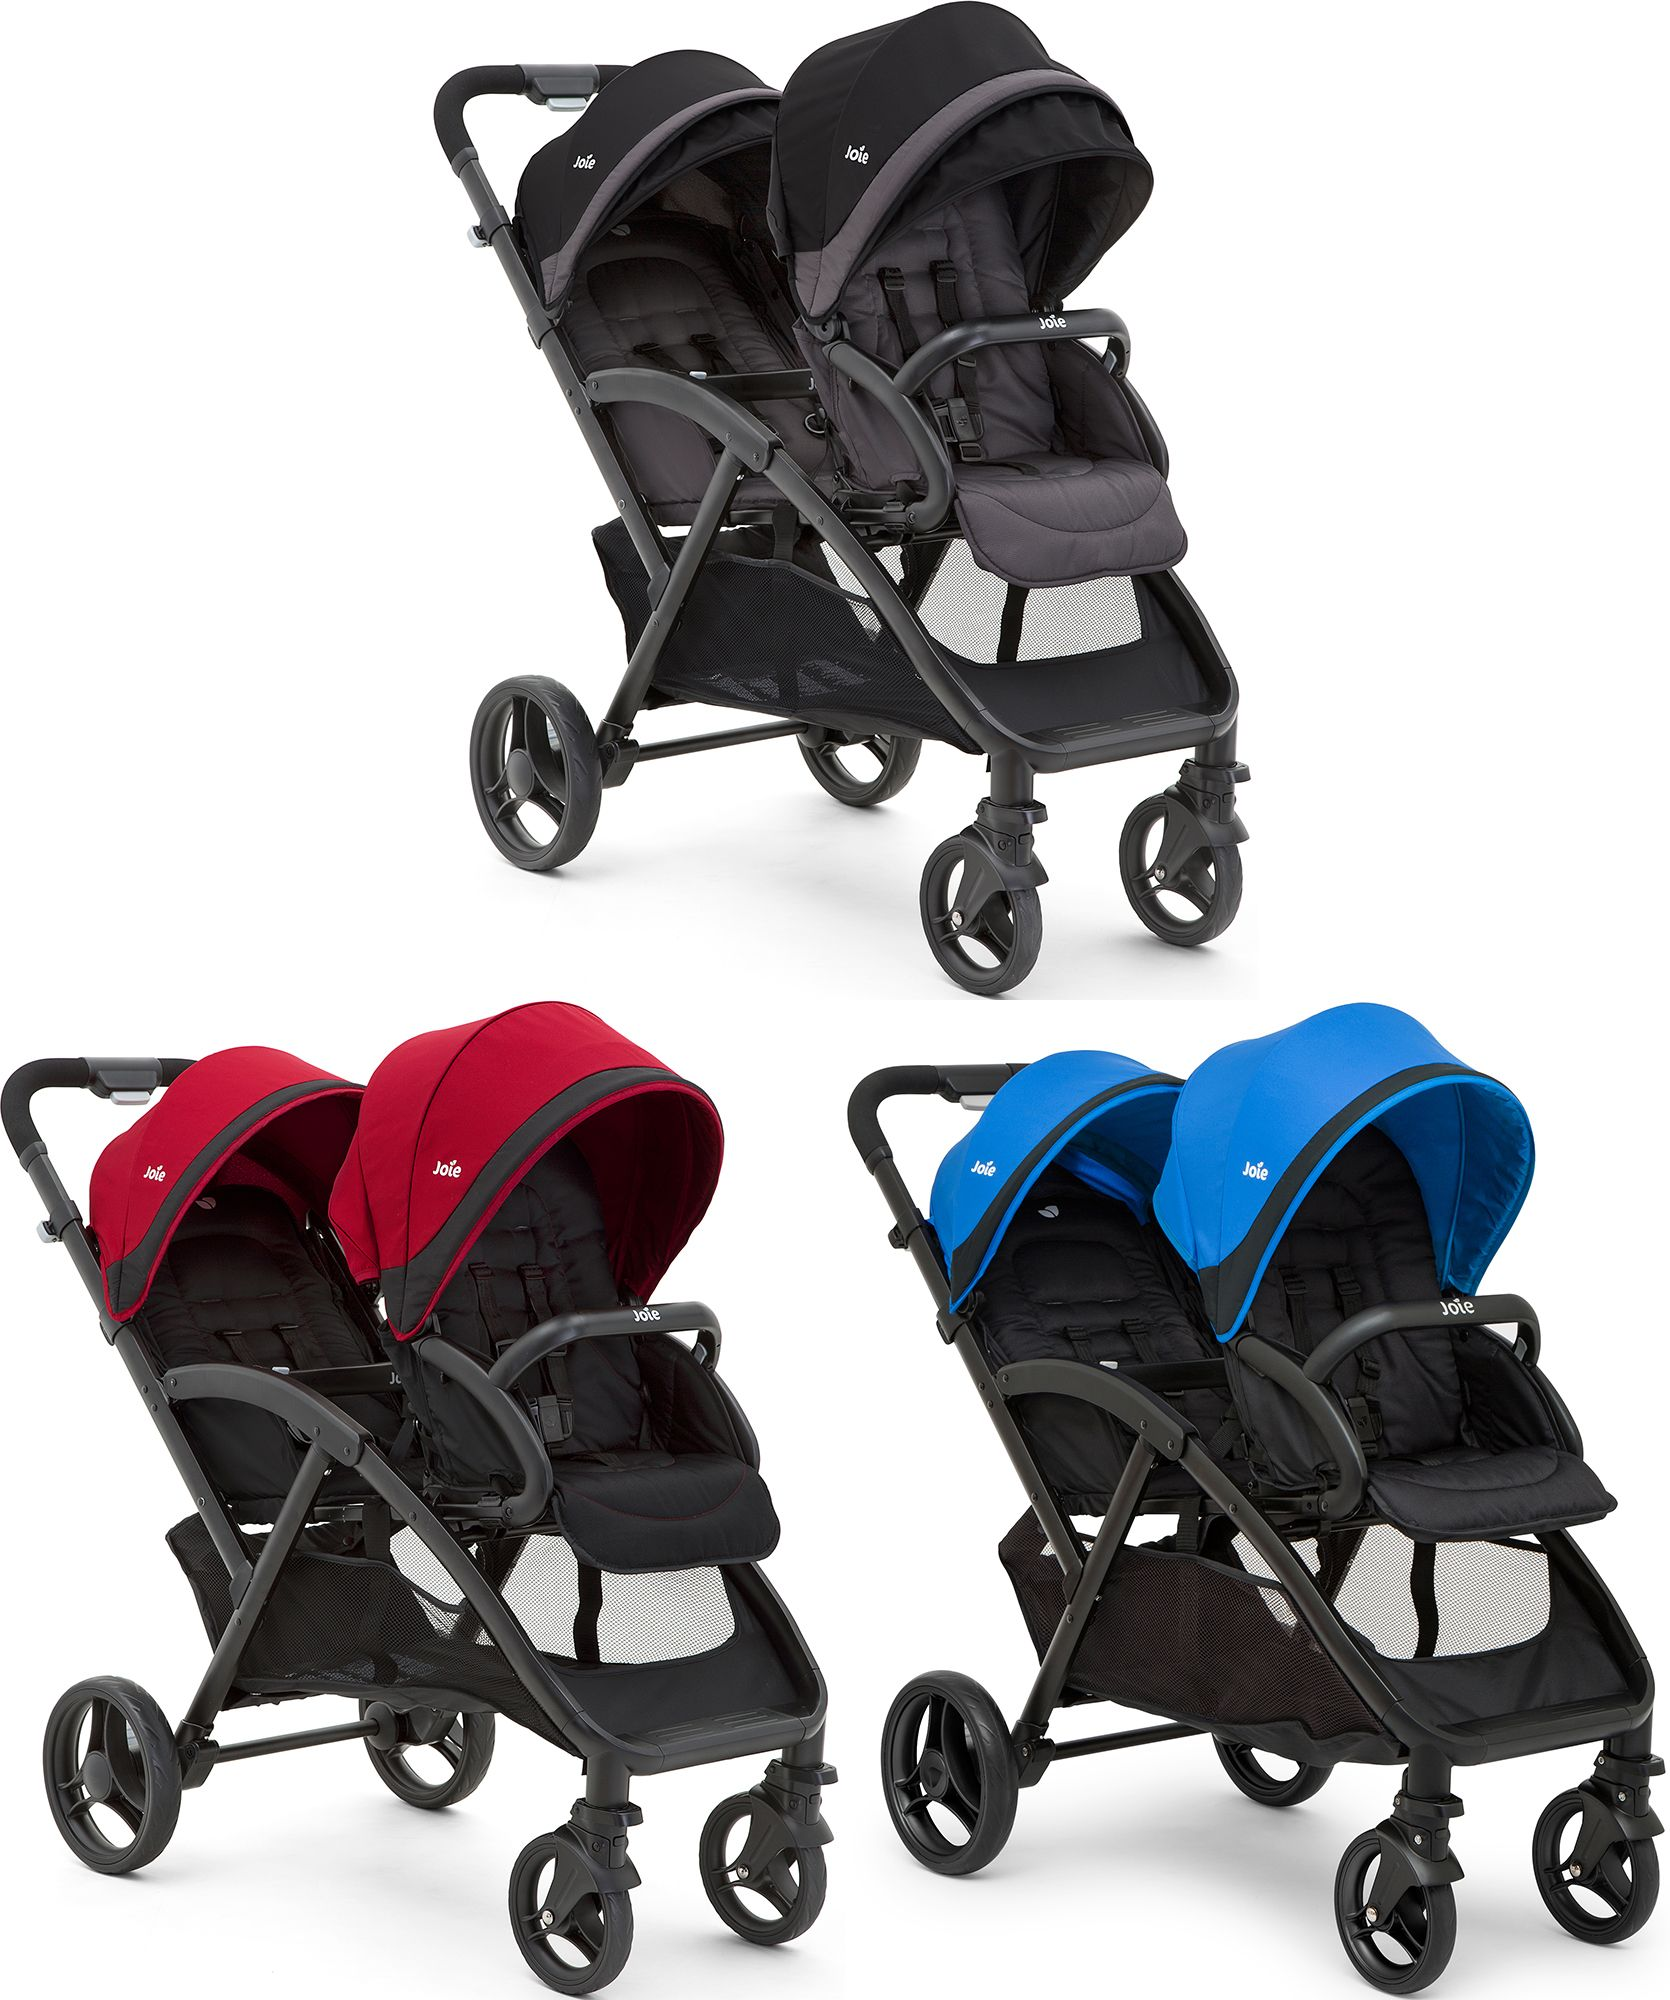 Buggy Joie Angebot Joie Evalite Duo Twin Stroller Double Buggy Pushchair Baby